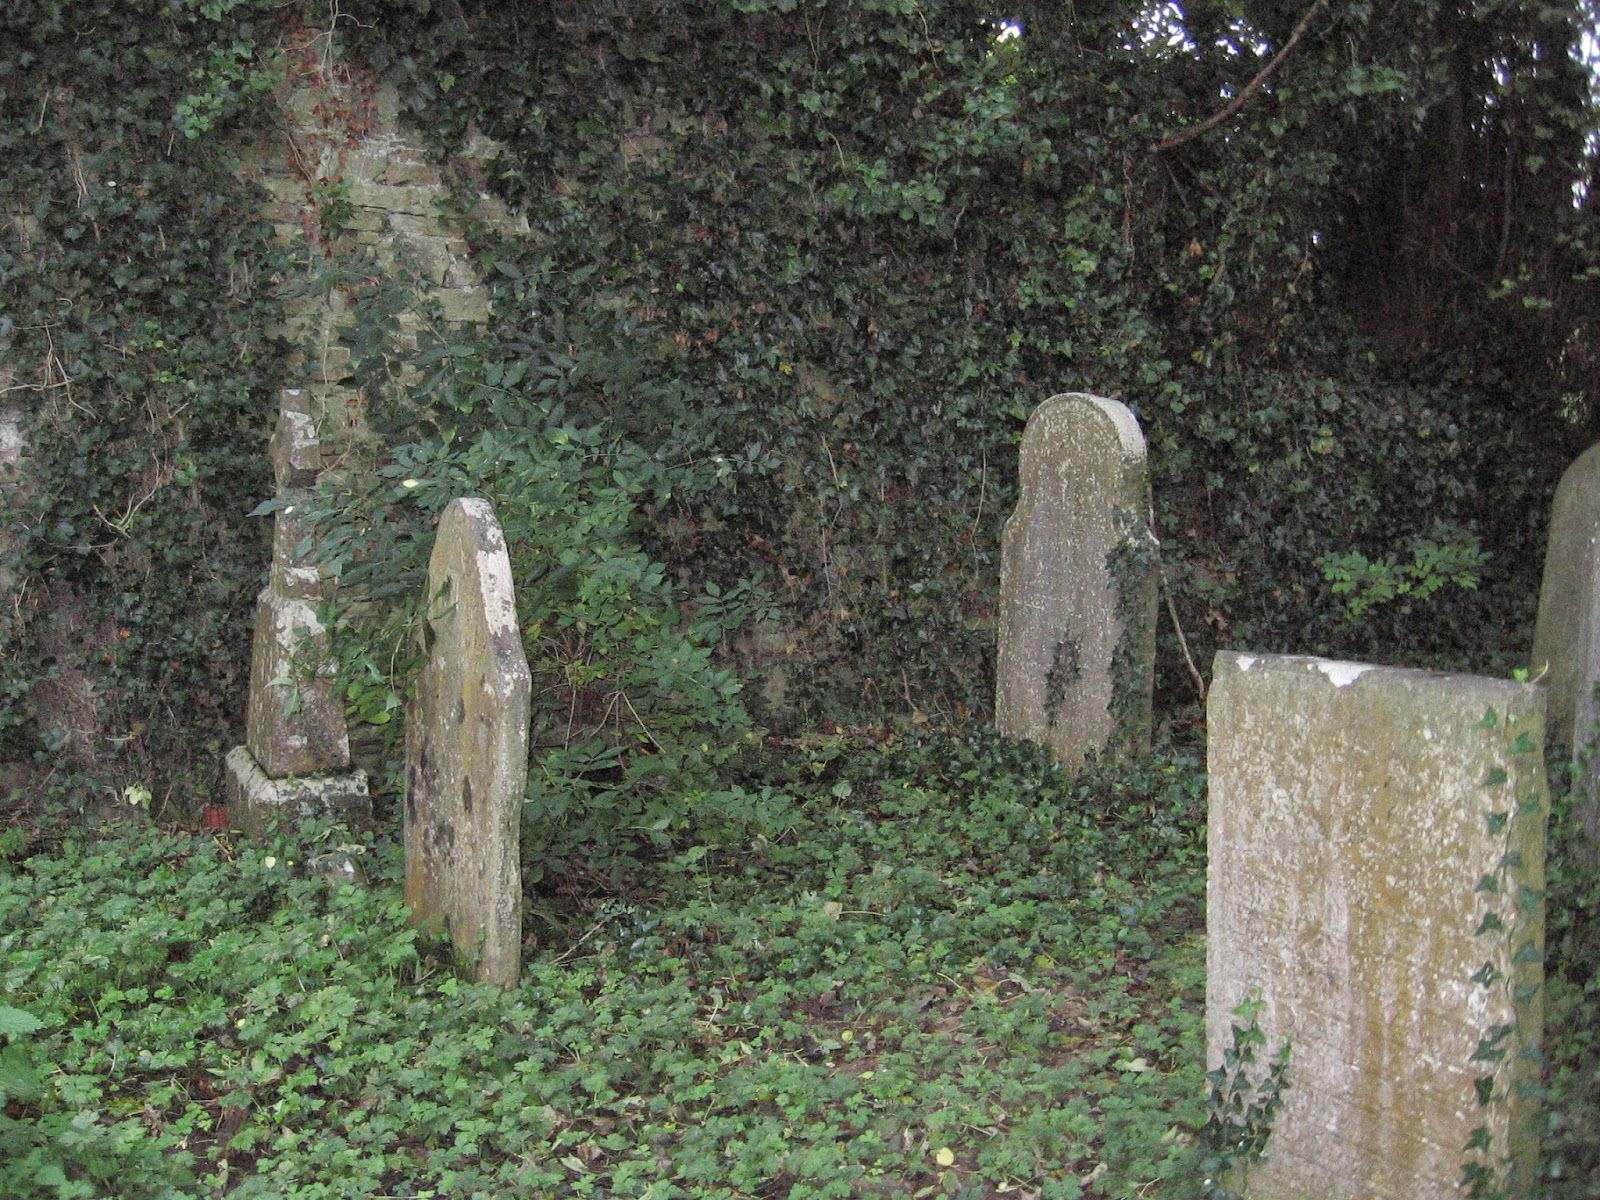 Headstones at Catholic church ruins at Castletown in the church parish of Ballyagran in County Limerick Ireland